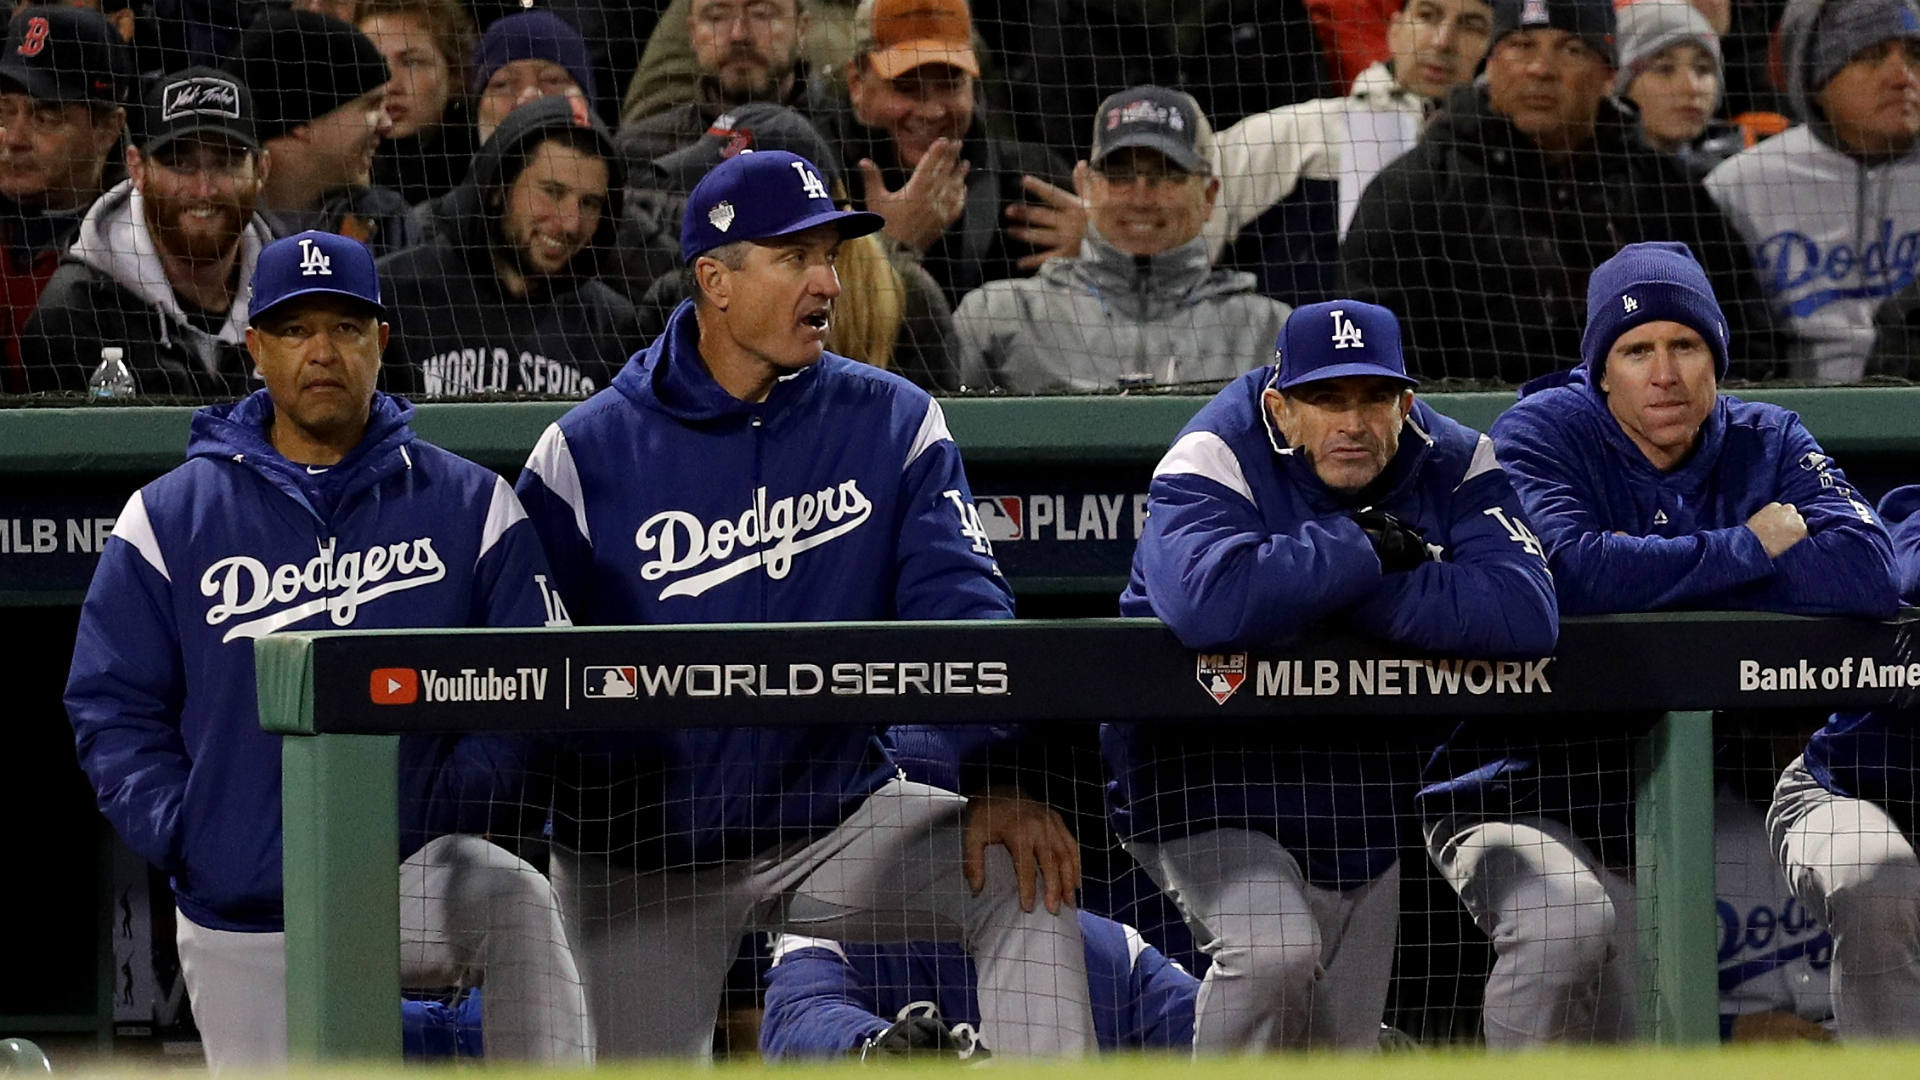 Dodgers defeat the Red Sox in a marathon World Series Game 3